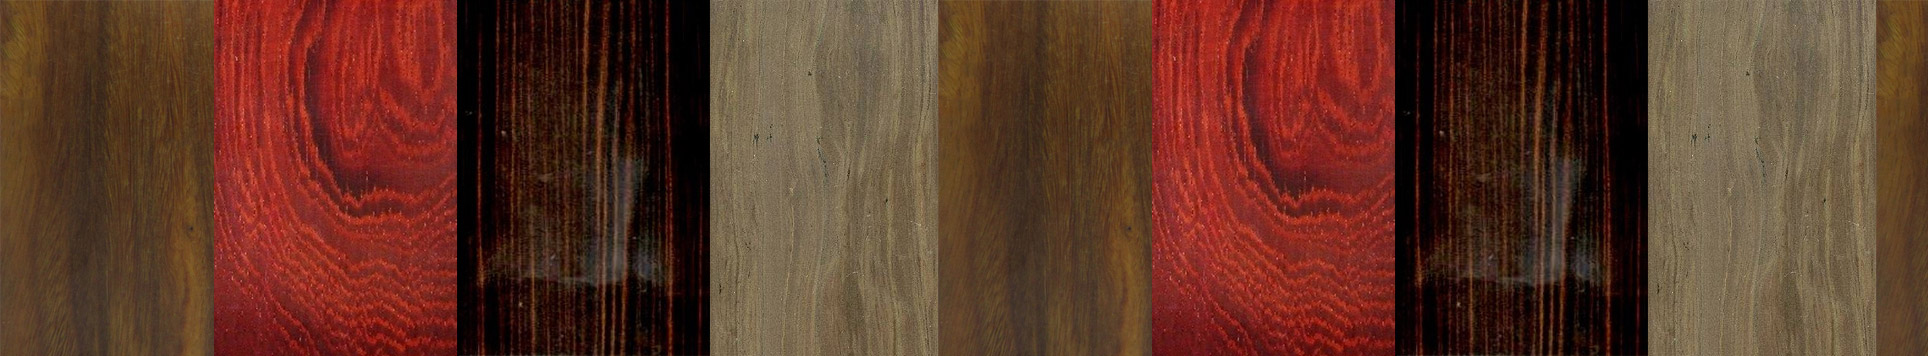 sandalwood-grain_hu